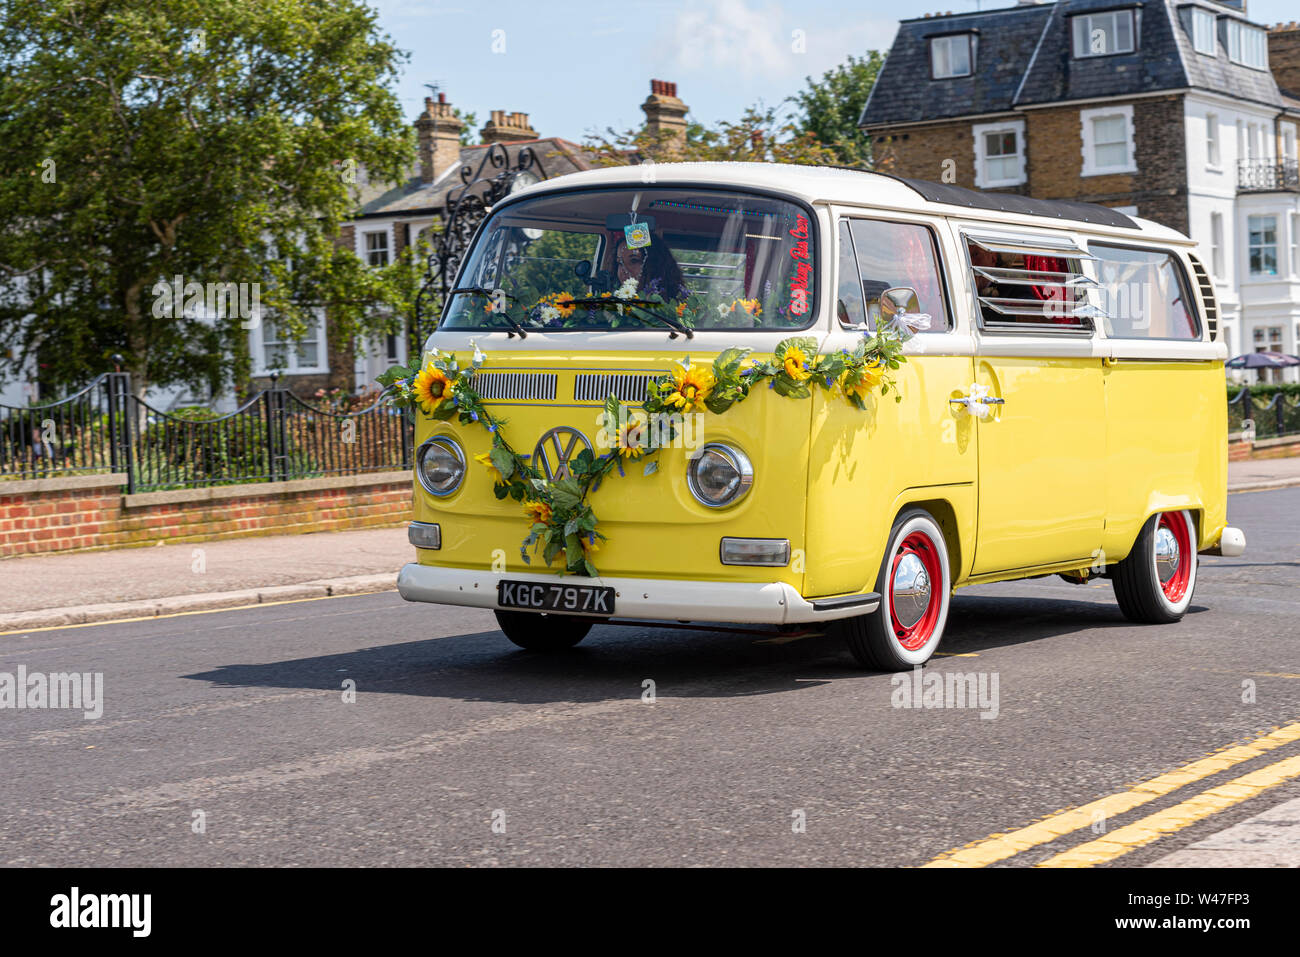 Volkswagen Bus High Resolution Stock Photography And Images Alamy